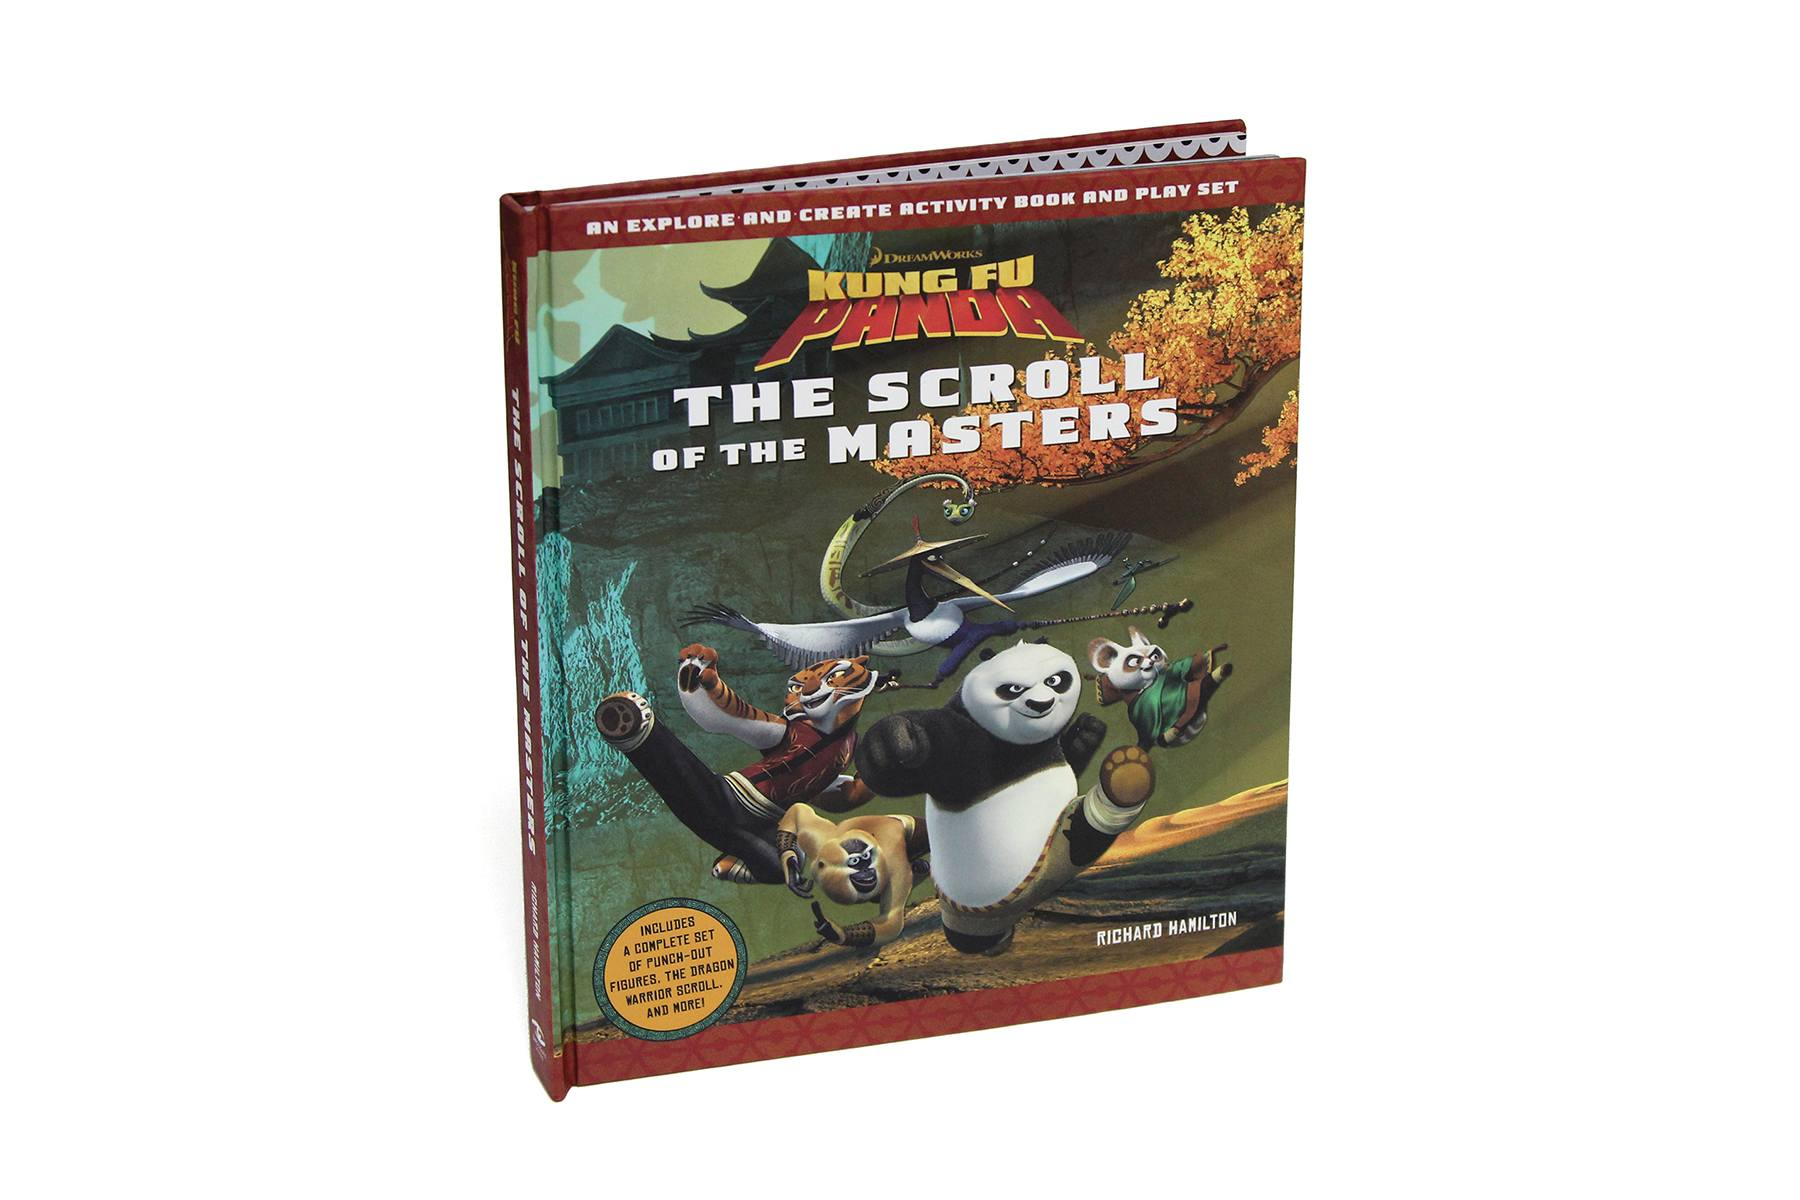 Kung Fu Panda - The Scroll of the Masters Trivia Book Buch Trivial Wissen Knowledge 2 On-Pack Co-Pack Druck Print Verpackung Schachtel Karton Packaging Box Starlite Veredelung Finish UV-Lack Colour 4c